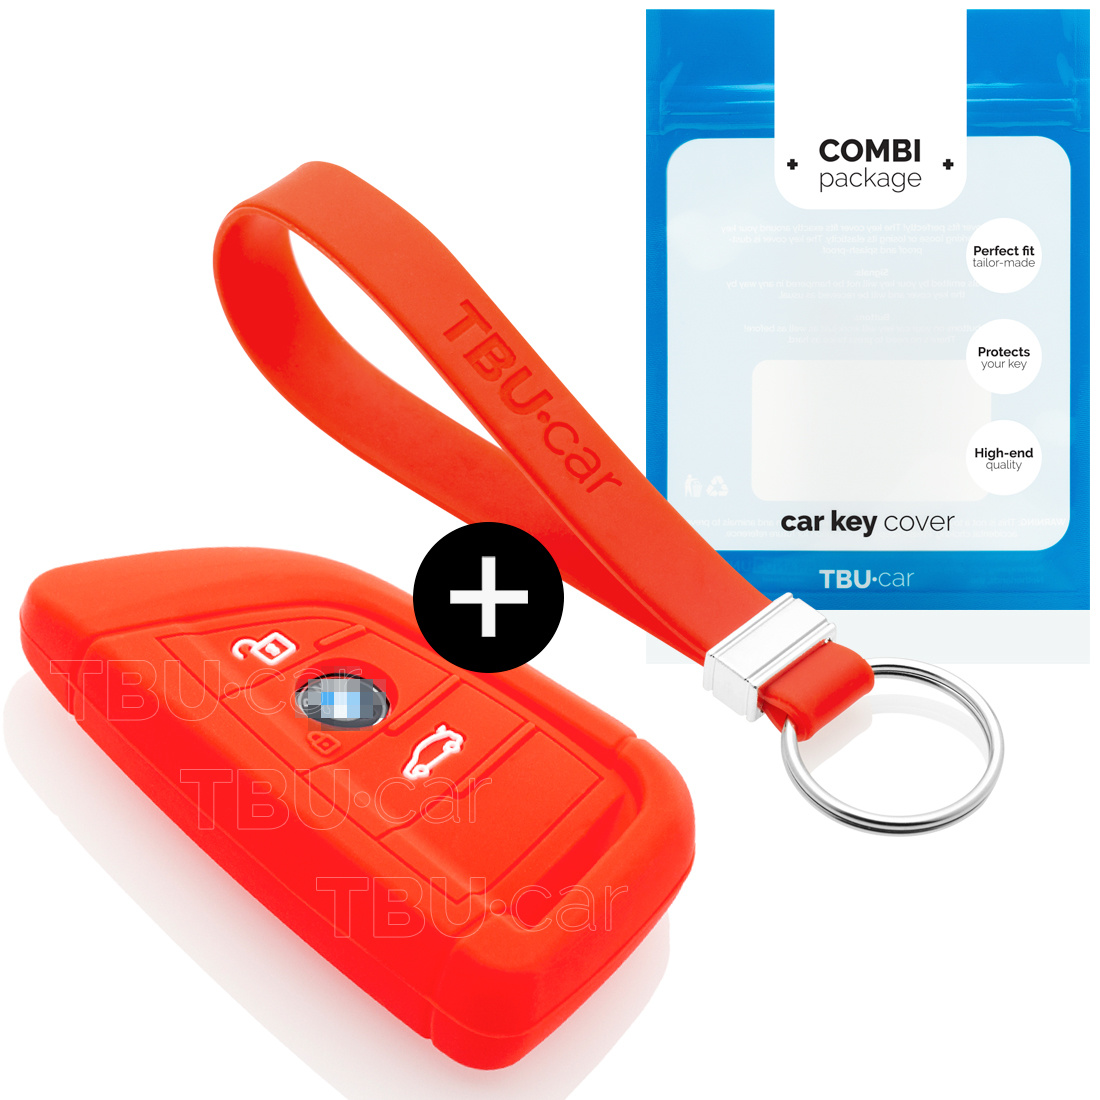 BMW Car key cover - Silicone Protective Remote Key Shell - FOB Case Cover - Red